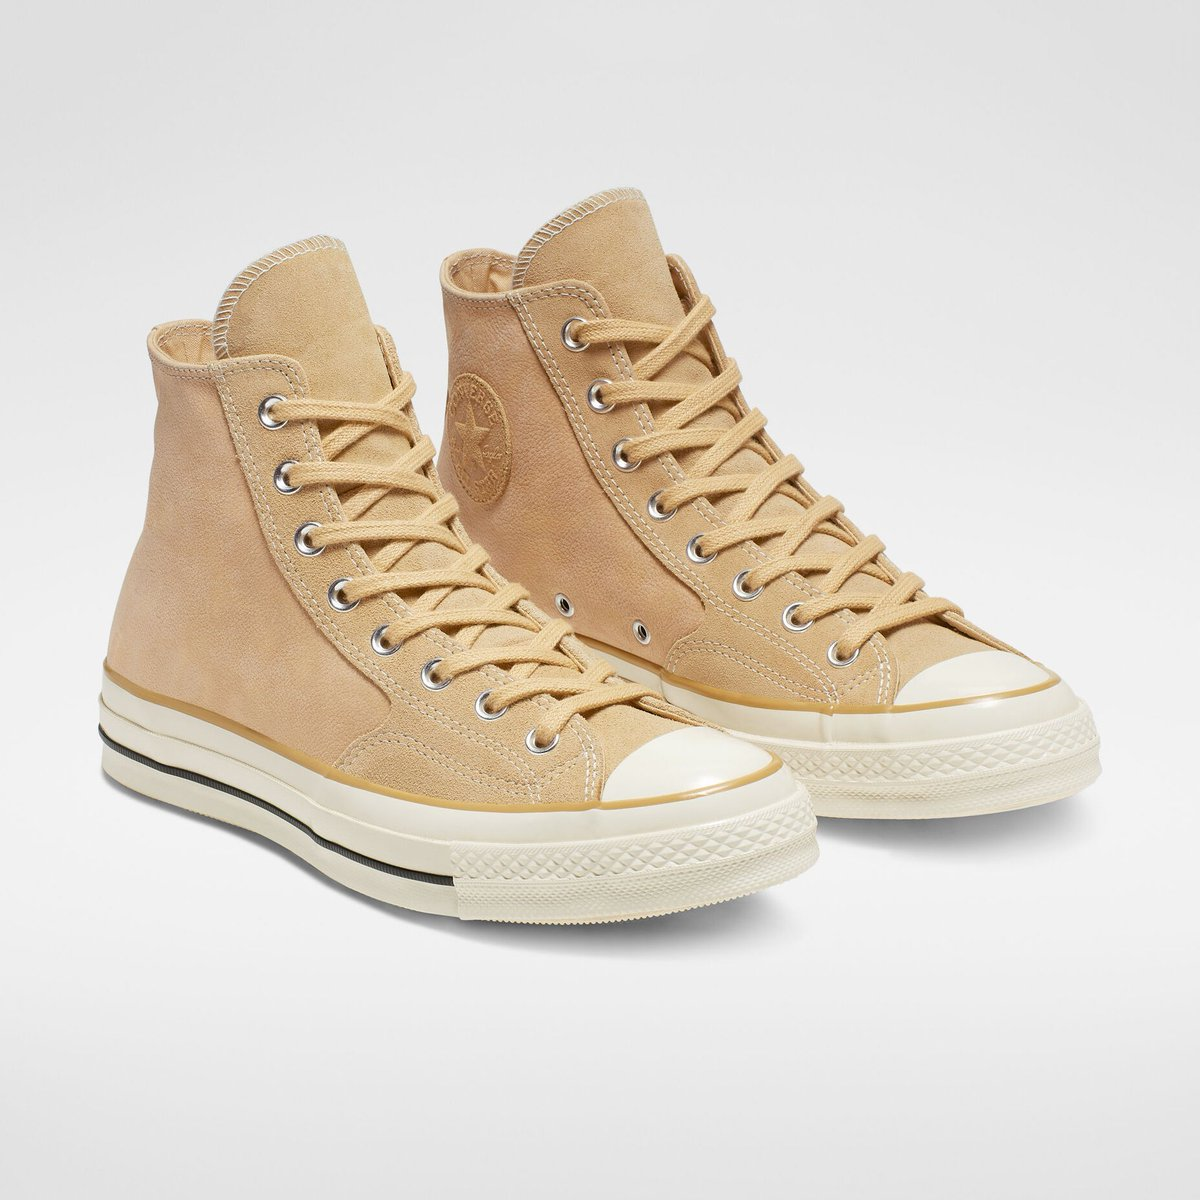 converse sneakers yellow hashtag on Twitter